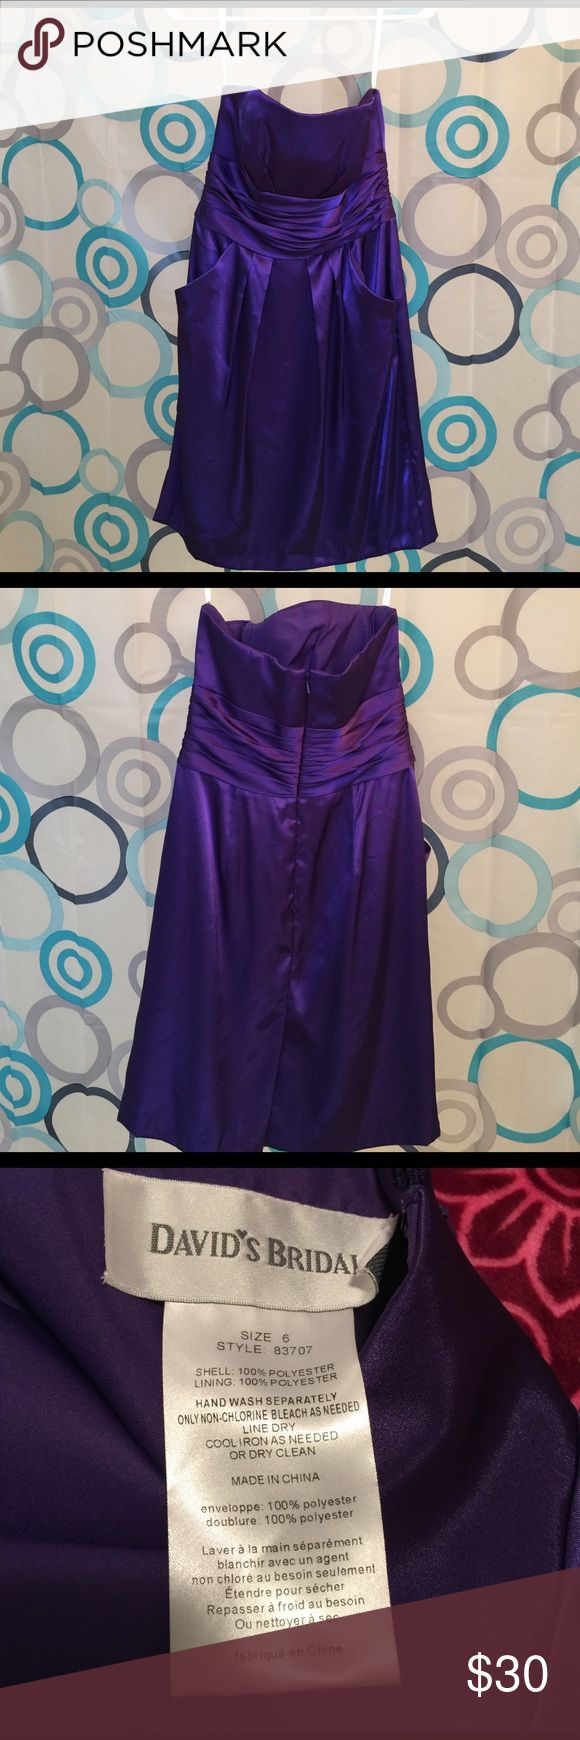 "David""s Bridal dress purple with pockets size 6 David""s Bridal dress purple worn once with pockets nice zip back David's Bridal Dresses Strapless"